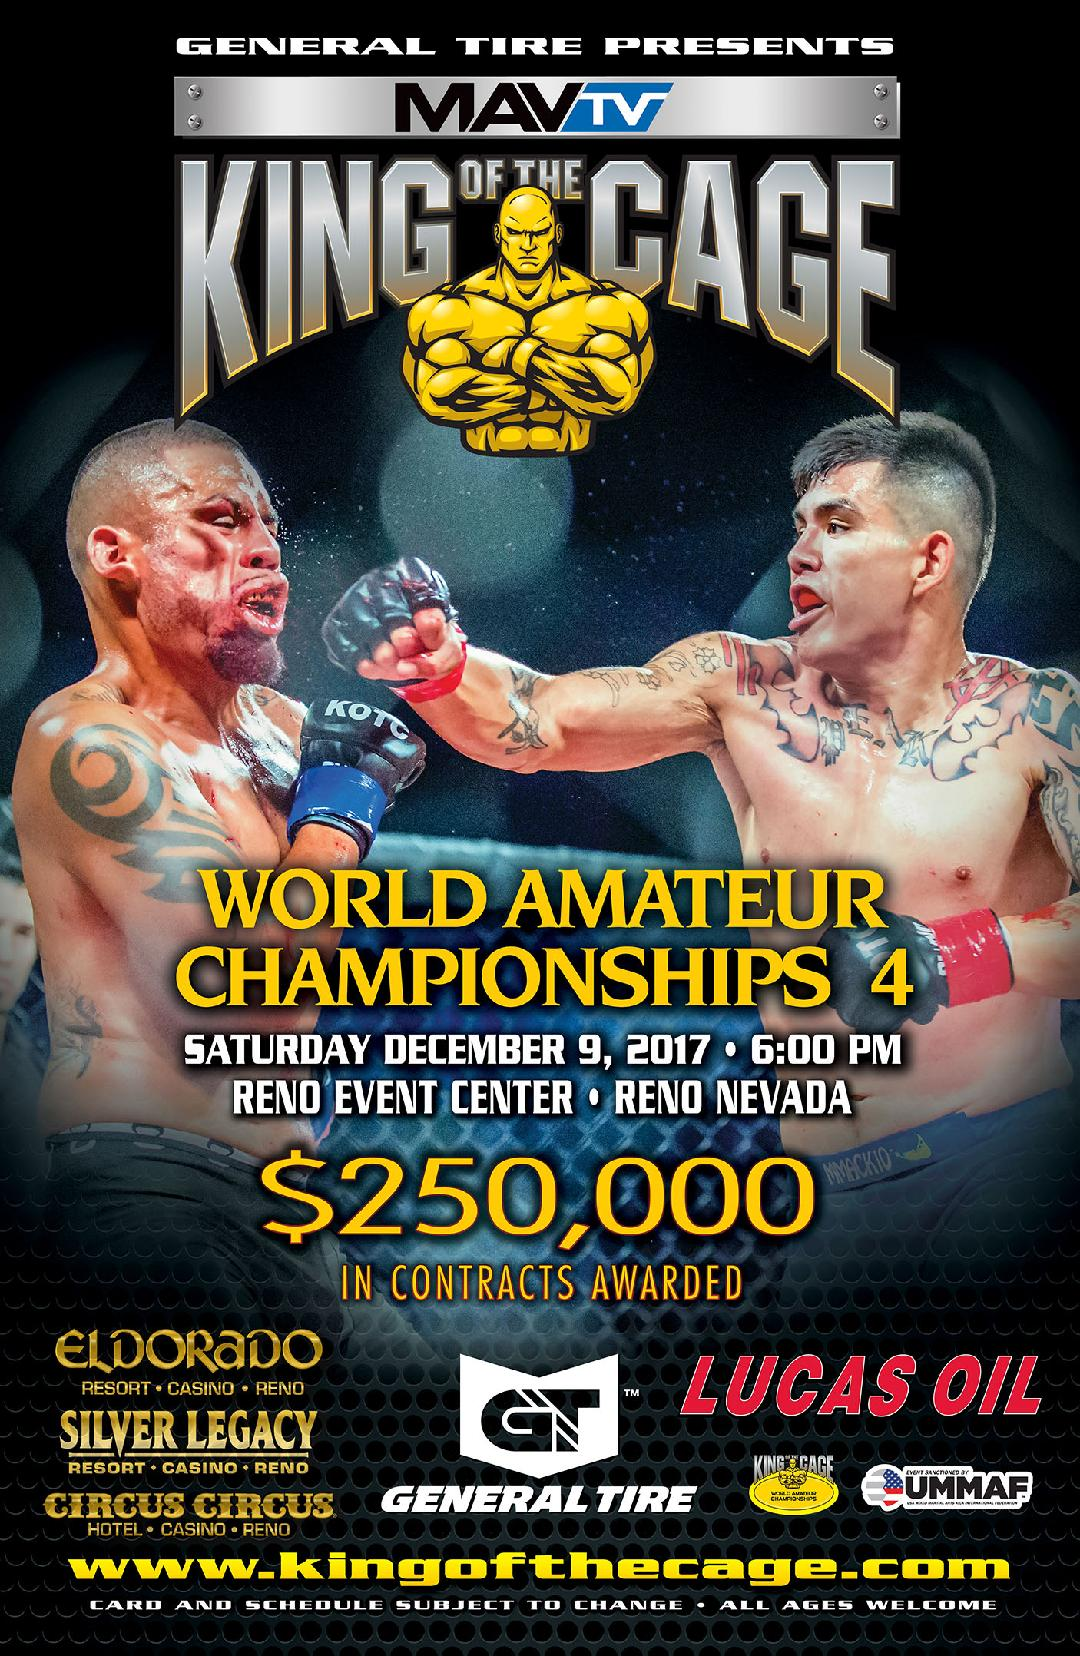 Fighters Announced for King of the Cage - World Amateur Championships 4